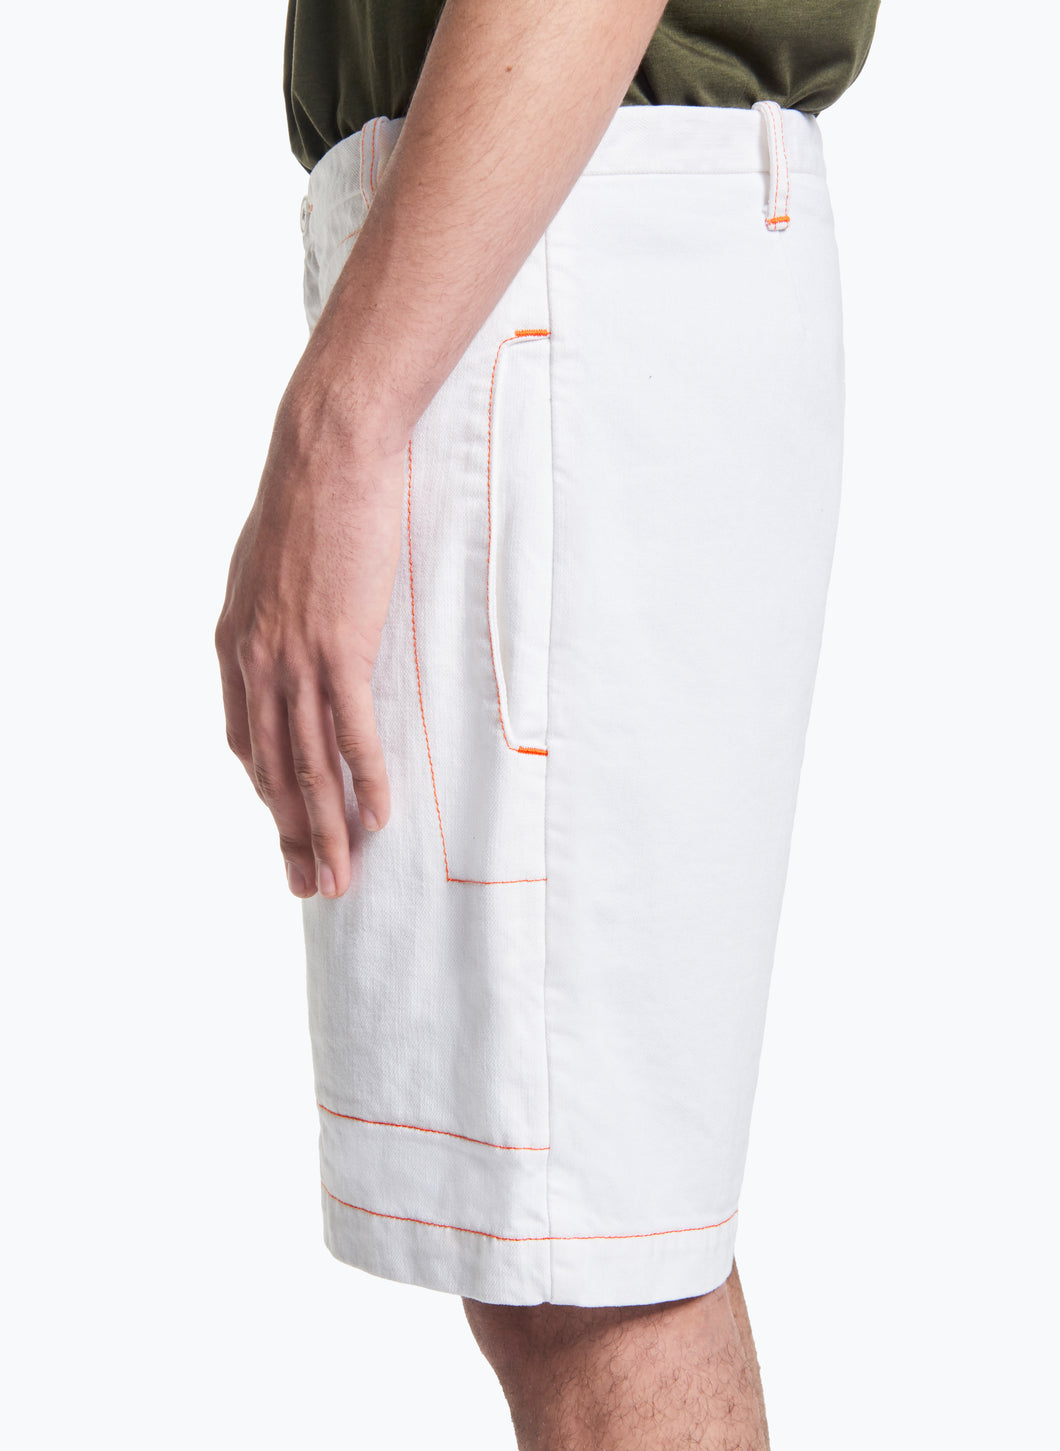 Bermuda Shorts with Notched Pockets in White Denim